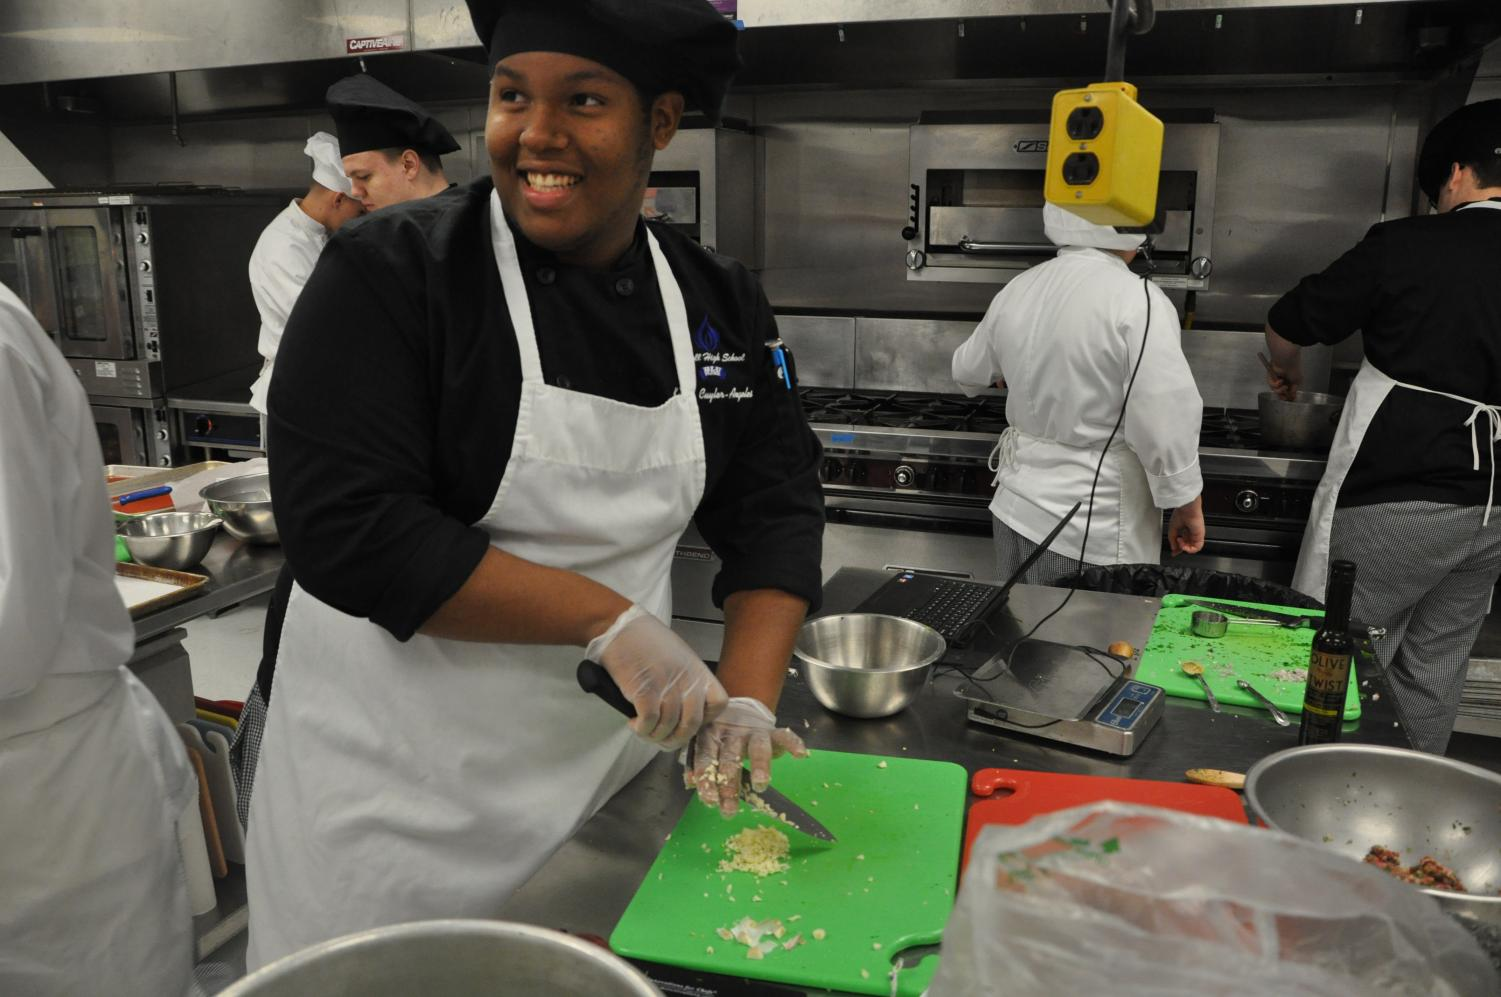 Keonte Acardio Cuyler-Angeles finds joy in the kitchen in the Culinary Arts Department in the school. Keonte Acardio Cuyler-Angeles